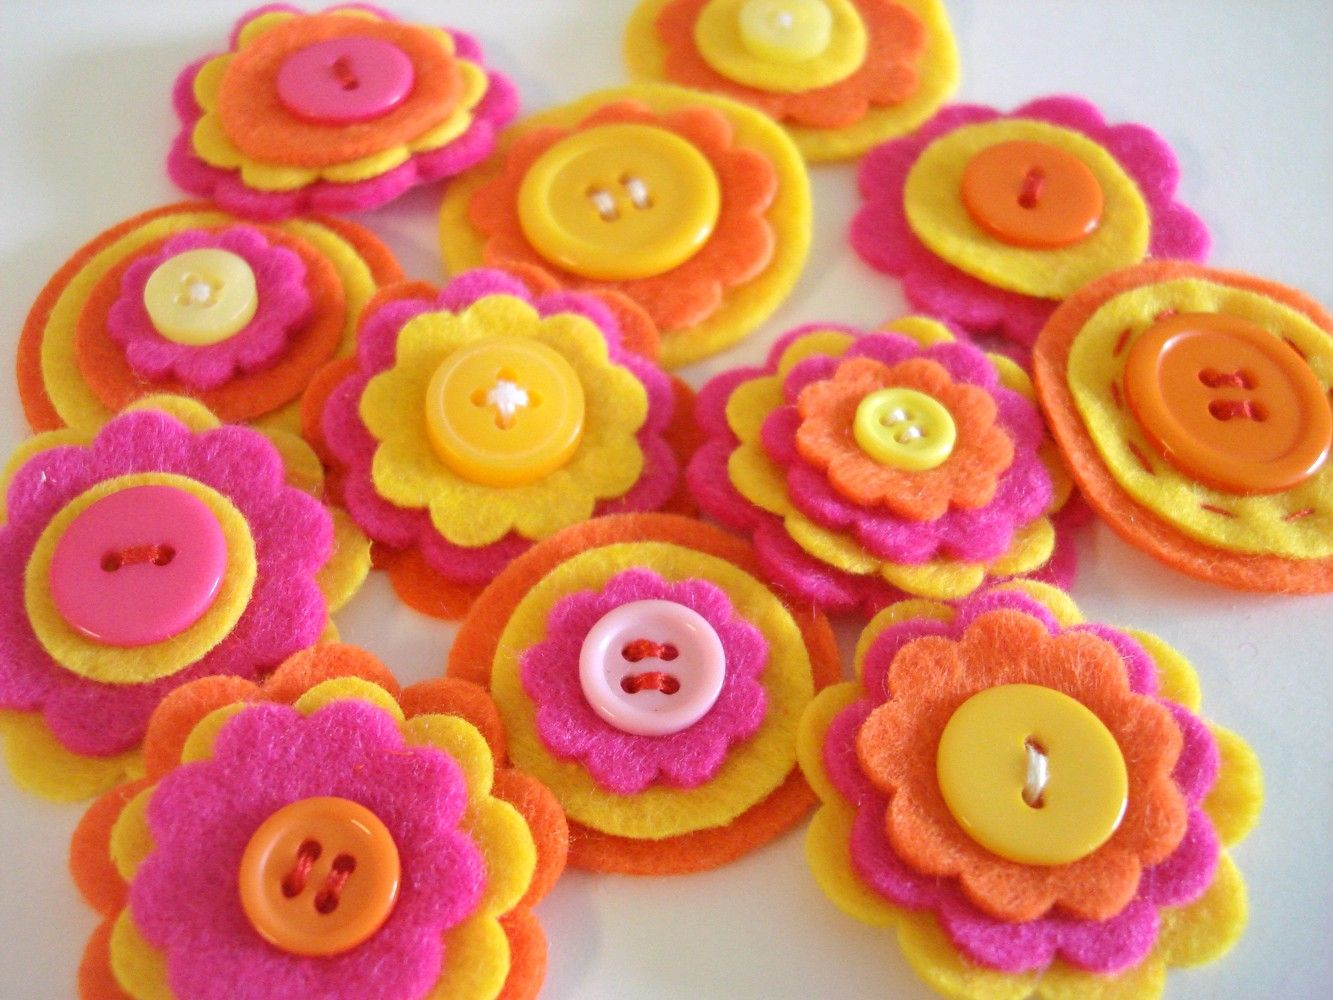 handmade felt  flower buttons for spring or summer http://www.theatreofyouth.org